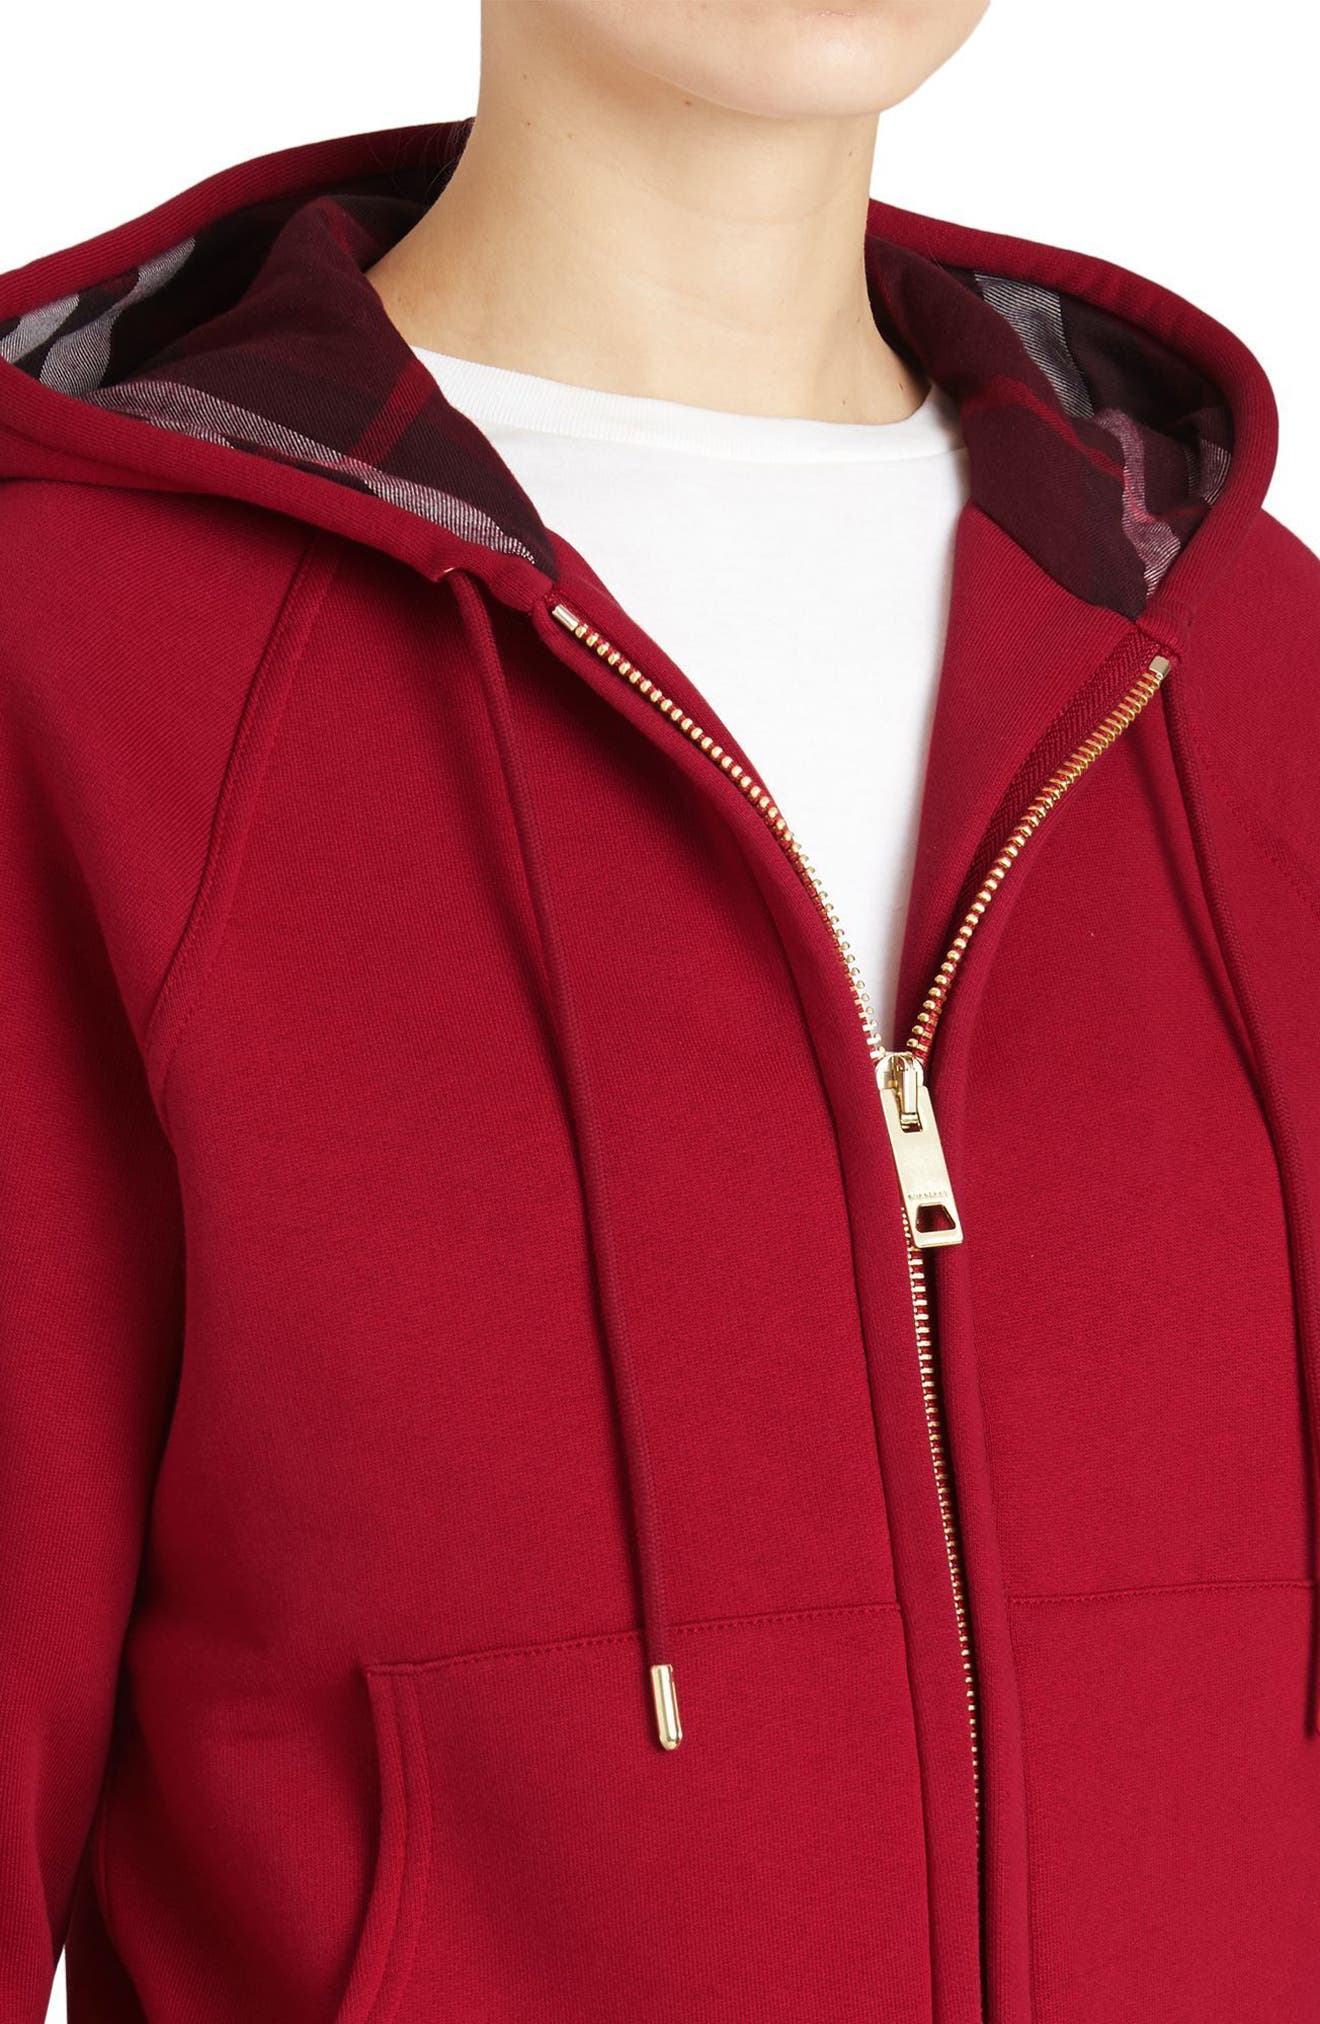 BURBERRY, Check Print Hoodie, Alternate thumbnail 4, color, PARADE RED